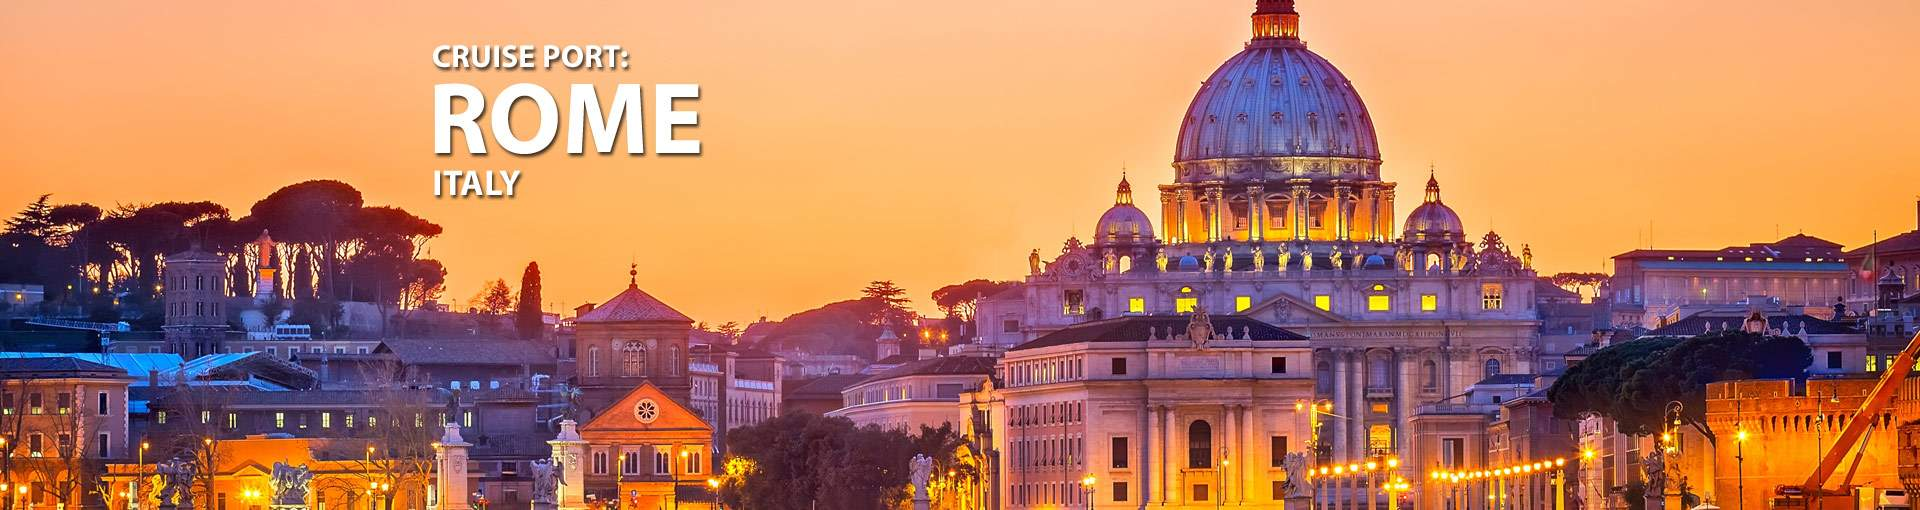 Rome civitavecchia italy cruise port 2019 and 2020 cruises from rome italy the cruise web - Getting from civitavecchia port to rome ...